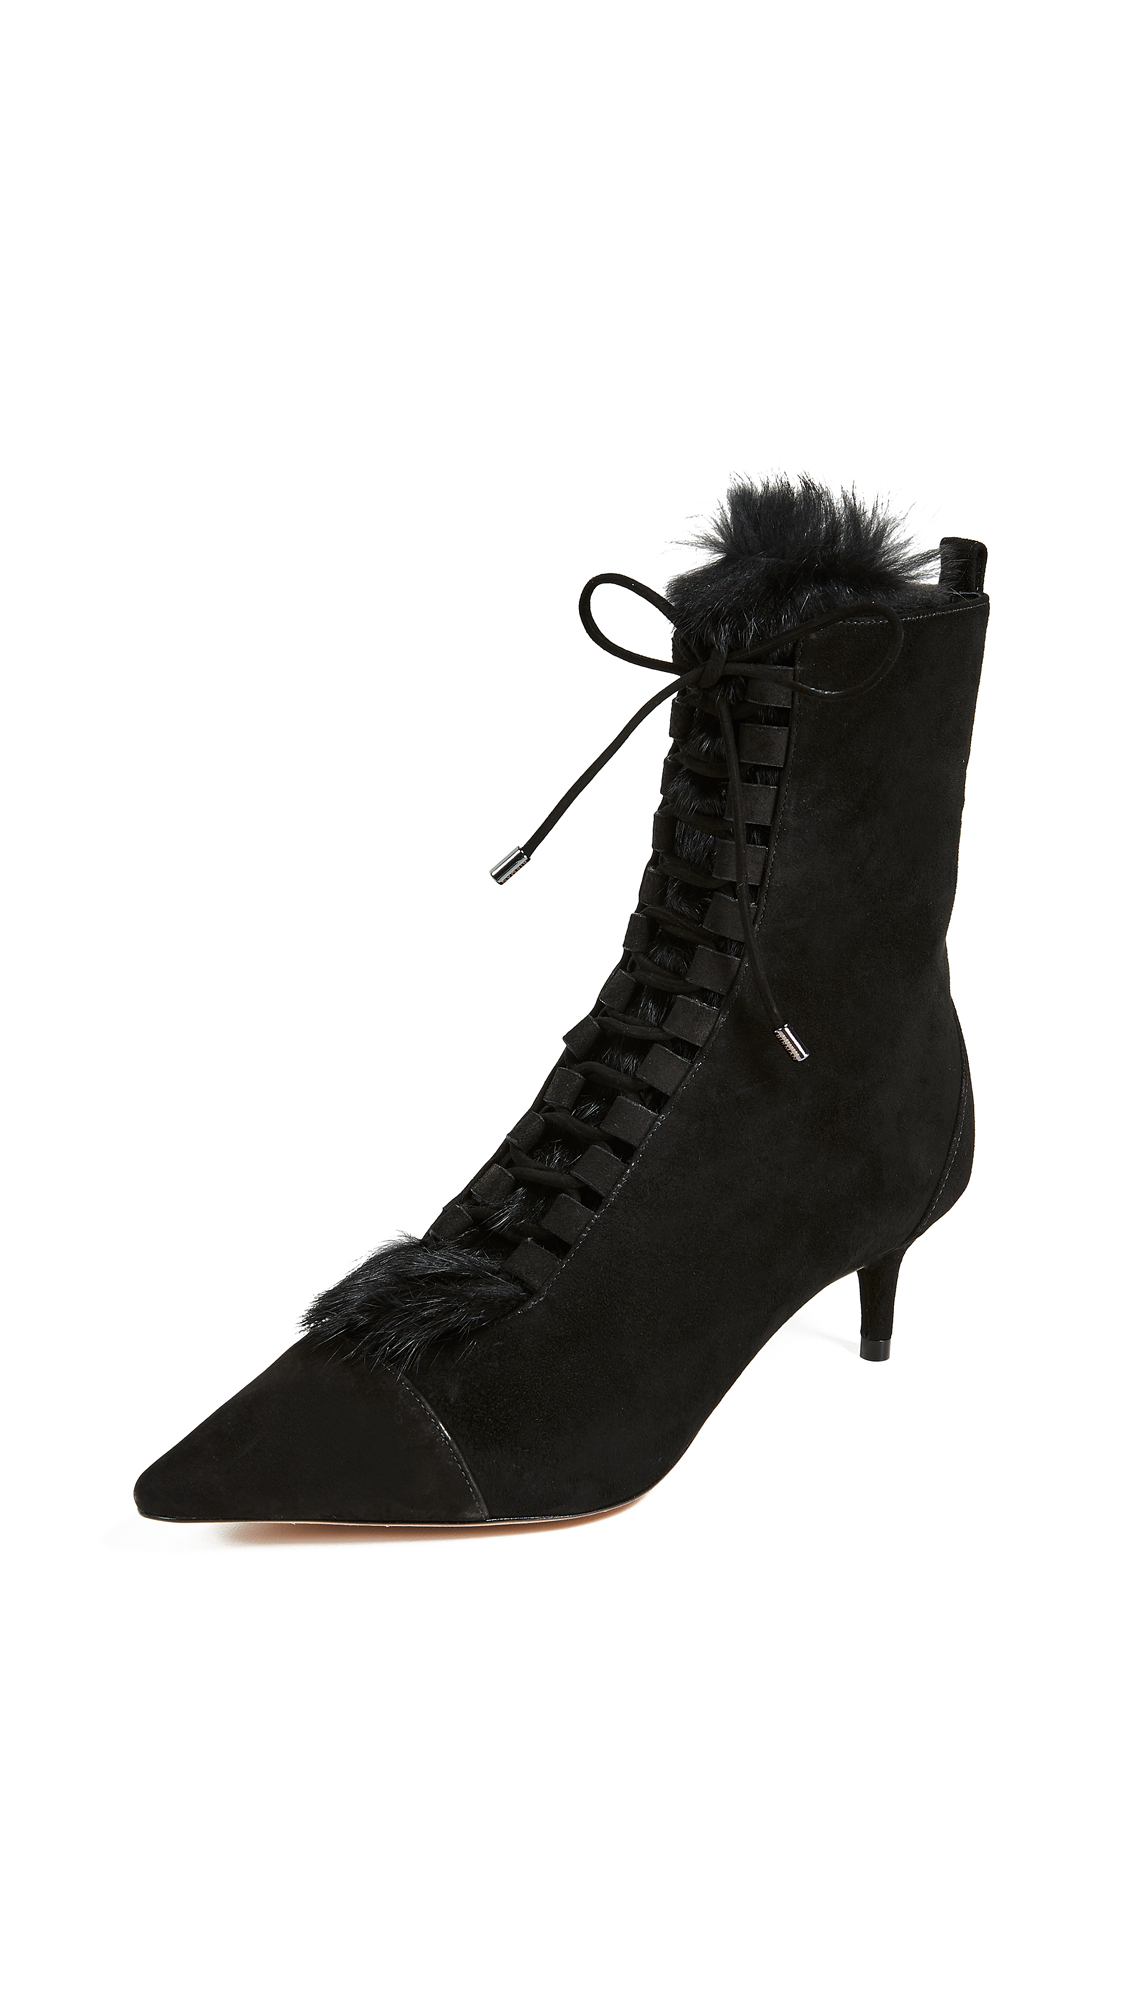 Alexandre Birman Millen Fur Booties - Black